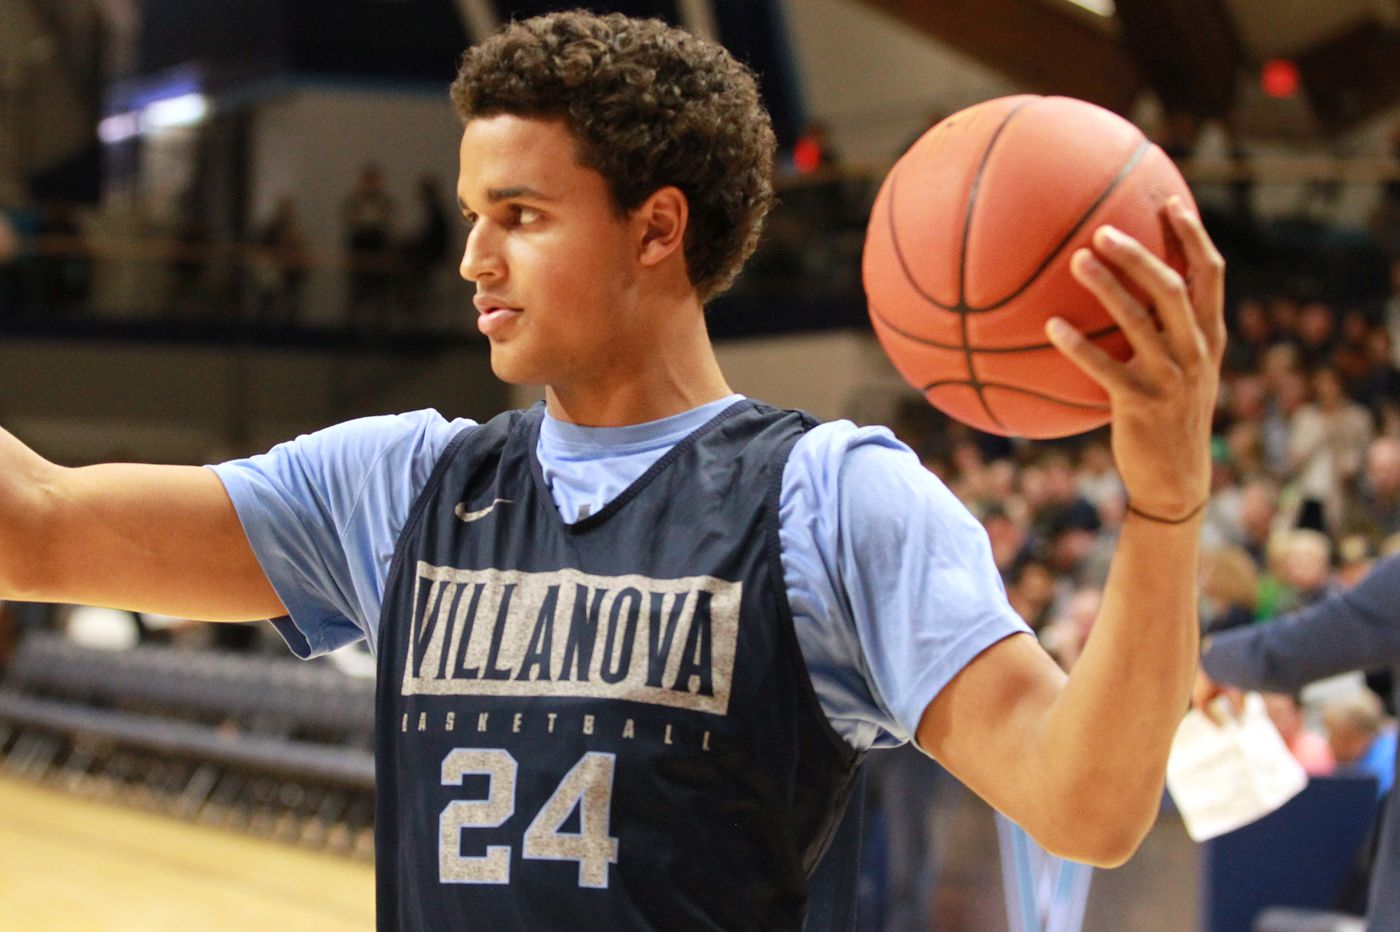 Villanova loses to Southern California, 72-61, in exhibition basketball game